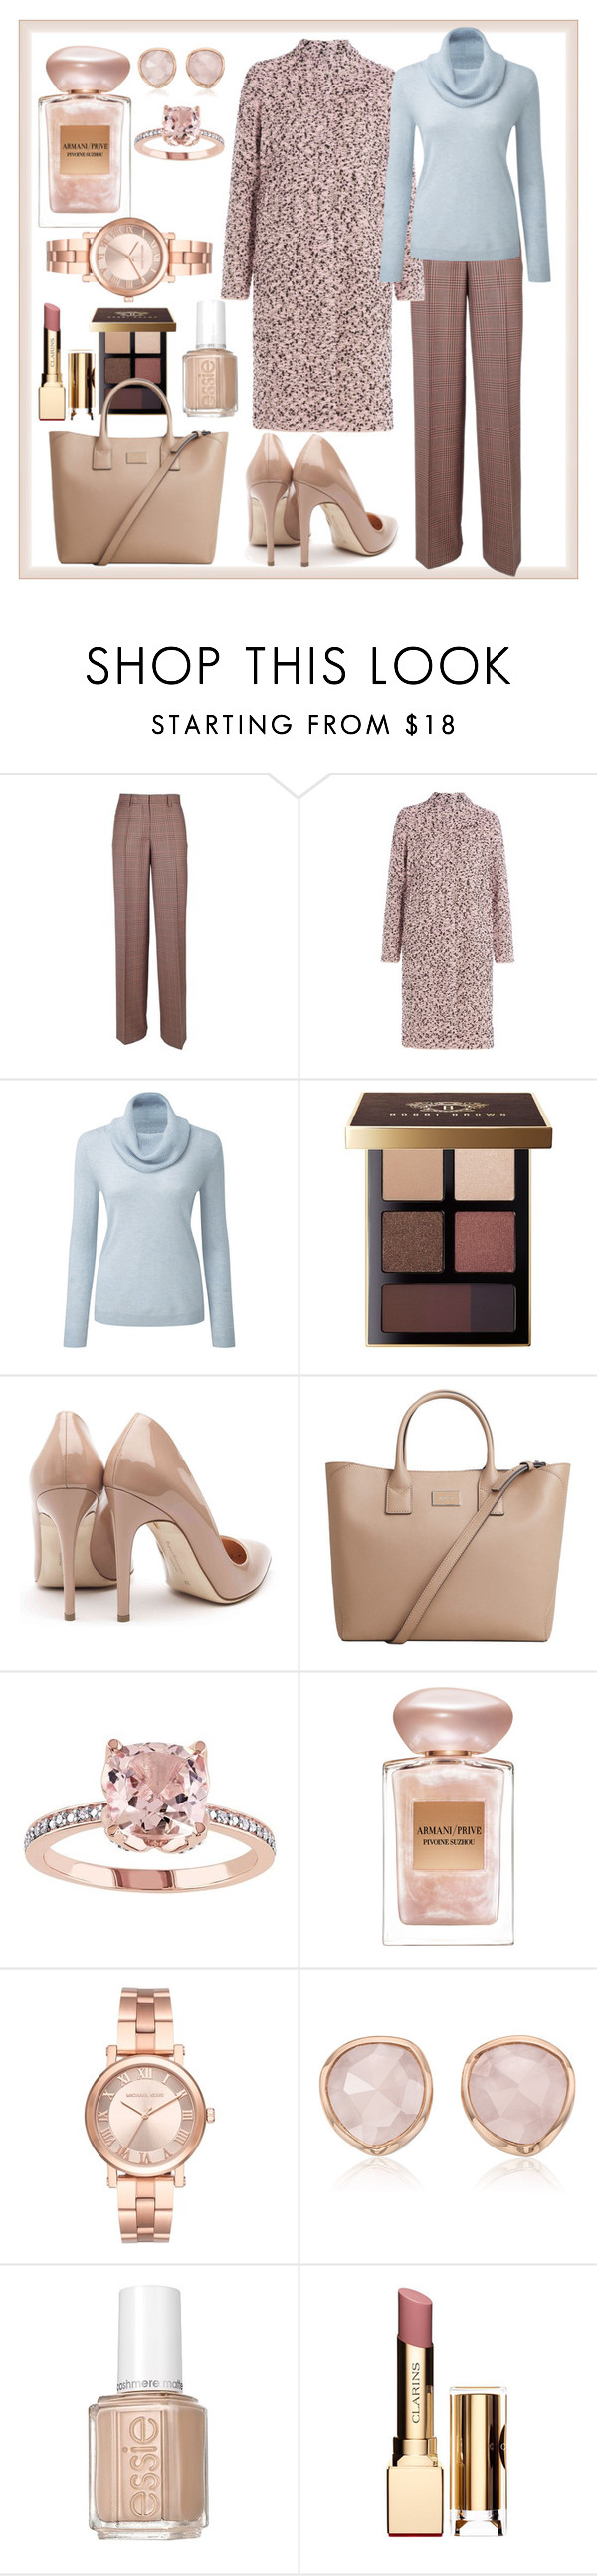 """""""rose blue office"""" by glamheartcafe ❤ liked on Polyvore featuring Dries Van Noten, M Missoni, Bobbi Brown Cosmetics, Rupert Sanderson, MANGO, Giorgio Armani, Michael Kors, Monica Vinader, Essie and Clarins"""